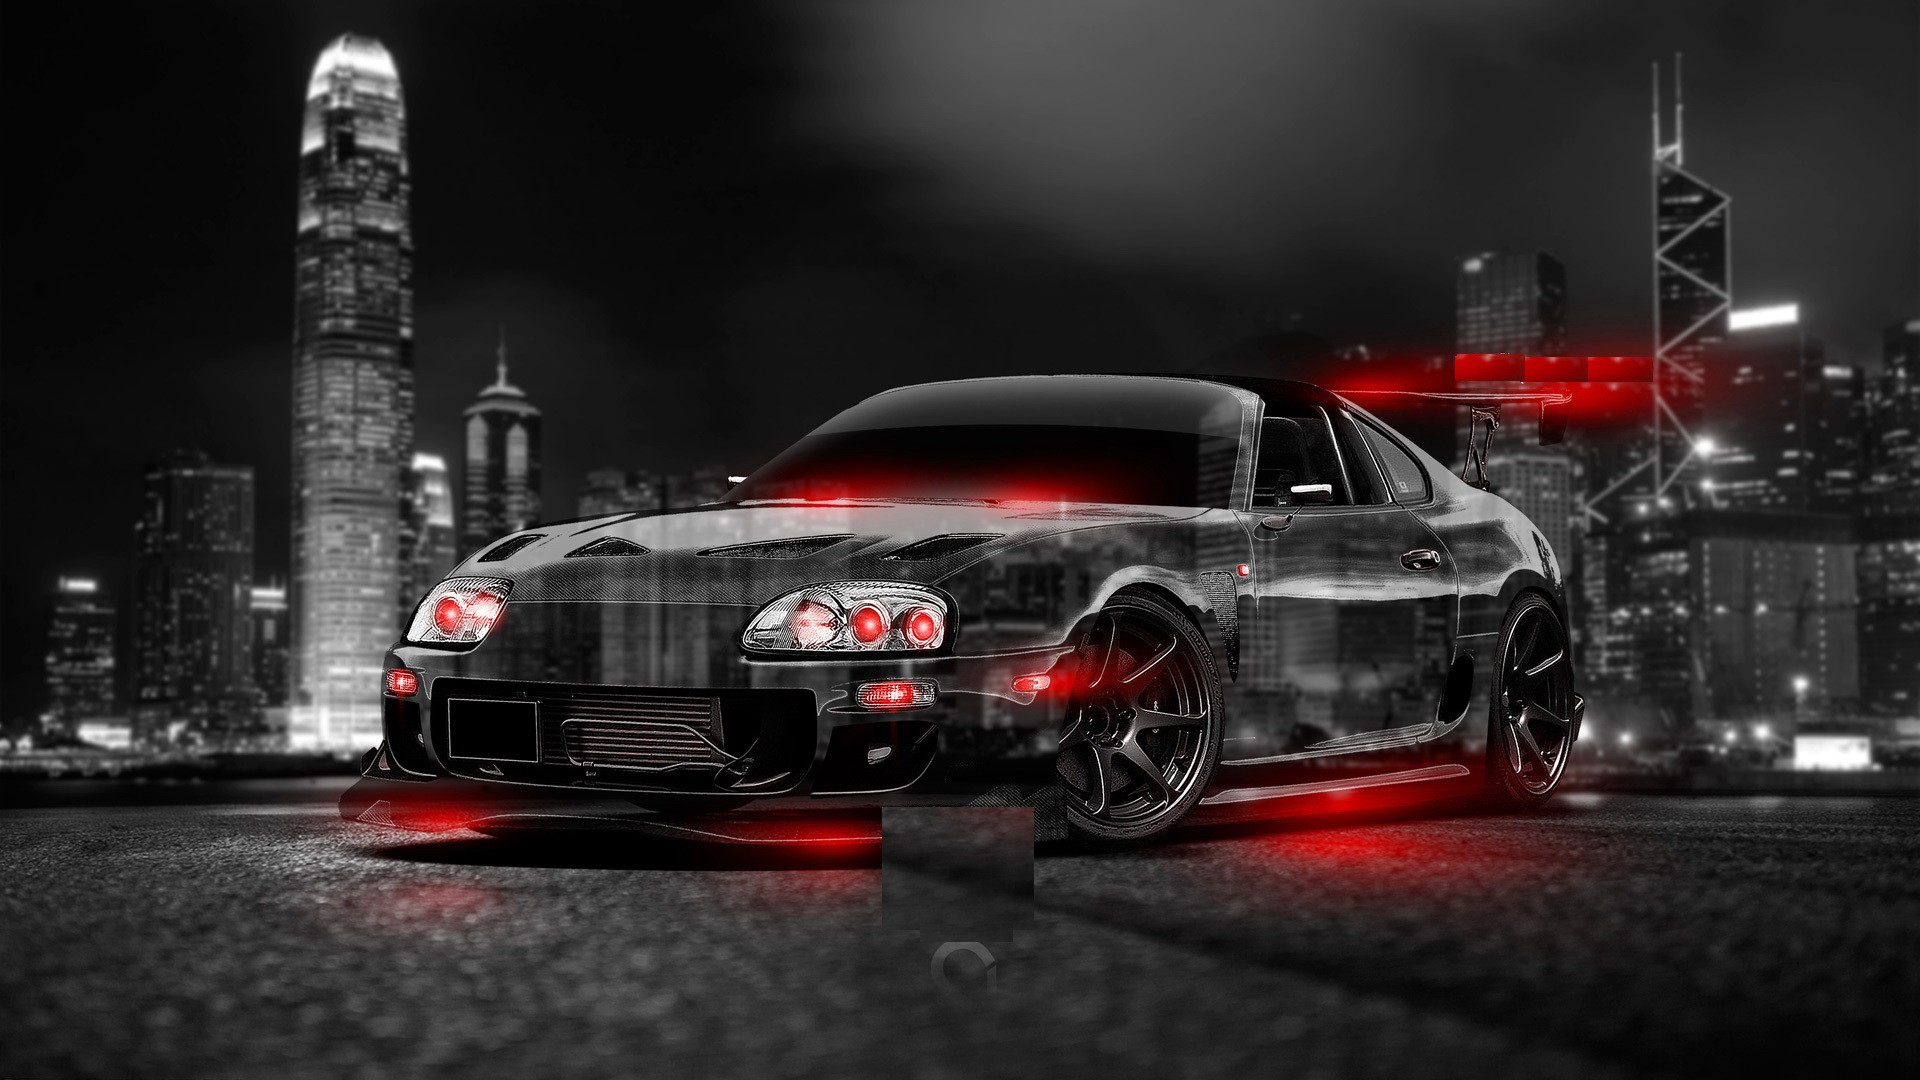 Fast And Furious 5 Cars Hd Wallpapers Toyota Supra Wallpaper 74 Images